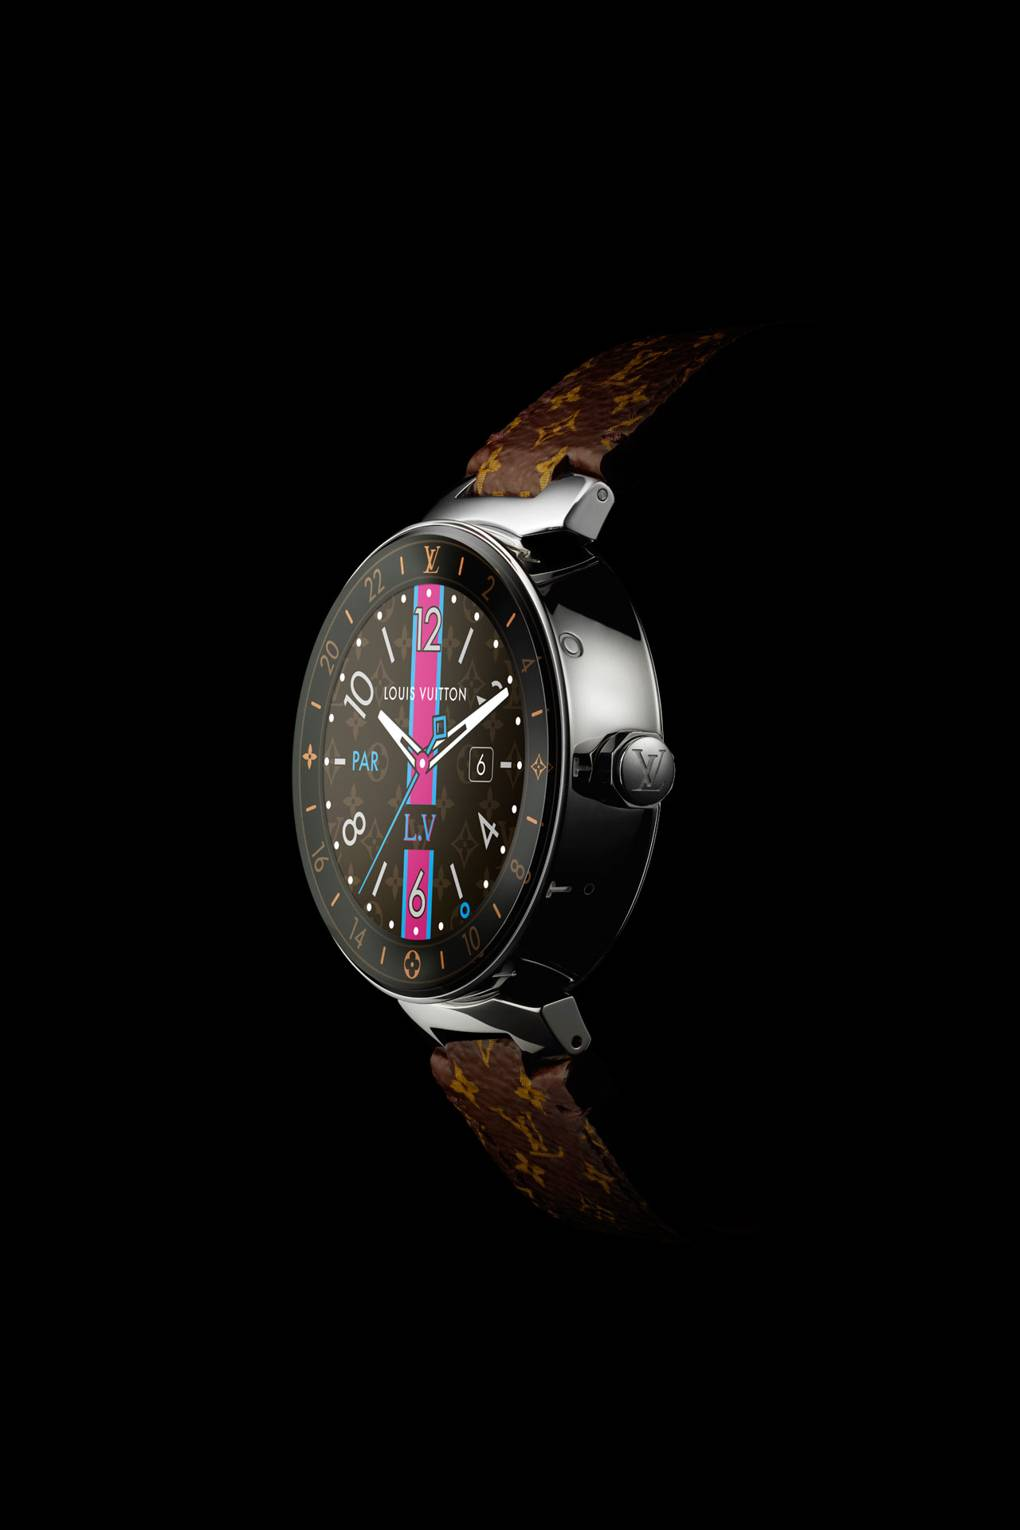 8dc13898338f Louis Vuitton Horizon smart watch adds connectivity to the Tambour Moon  line